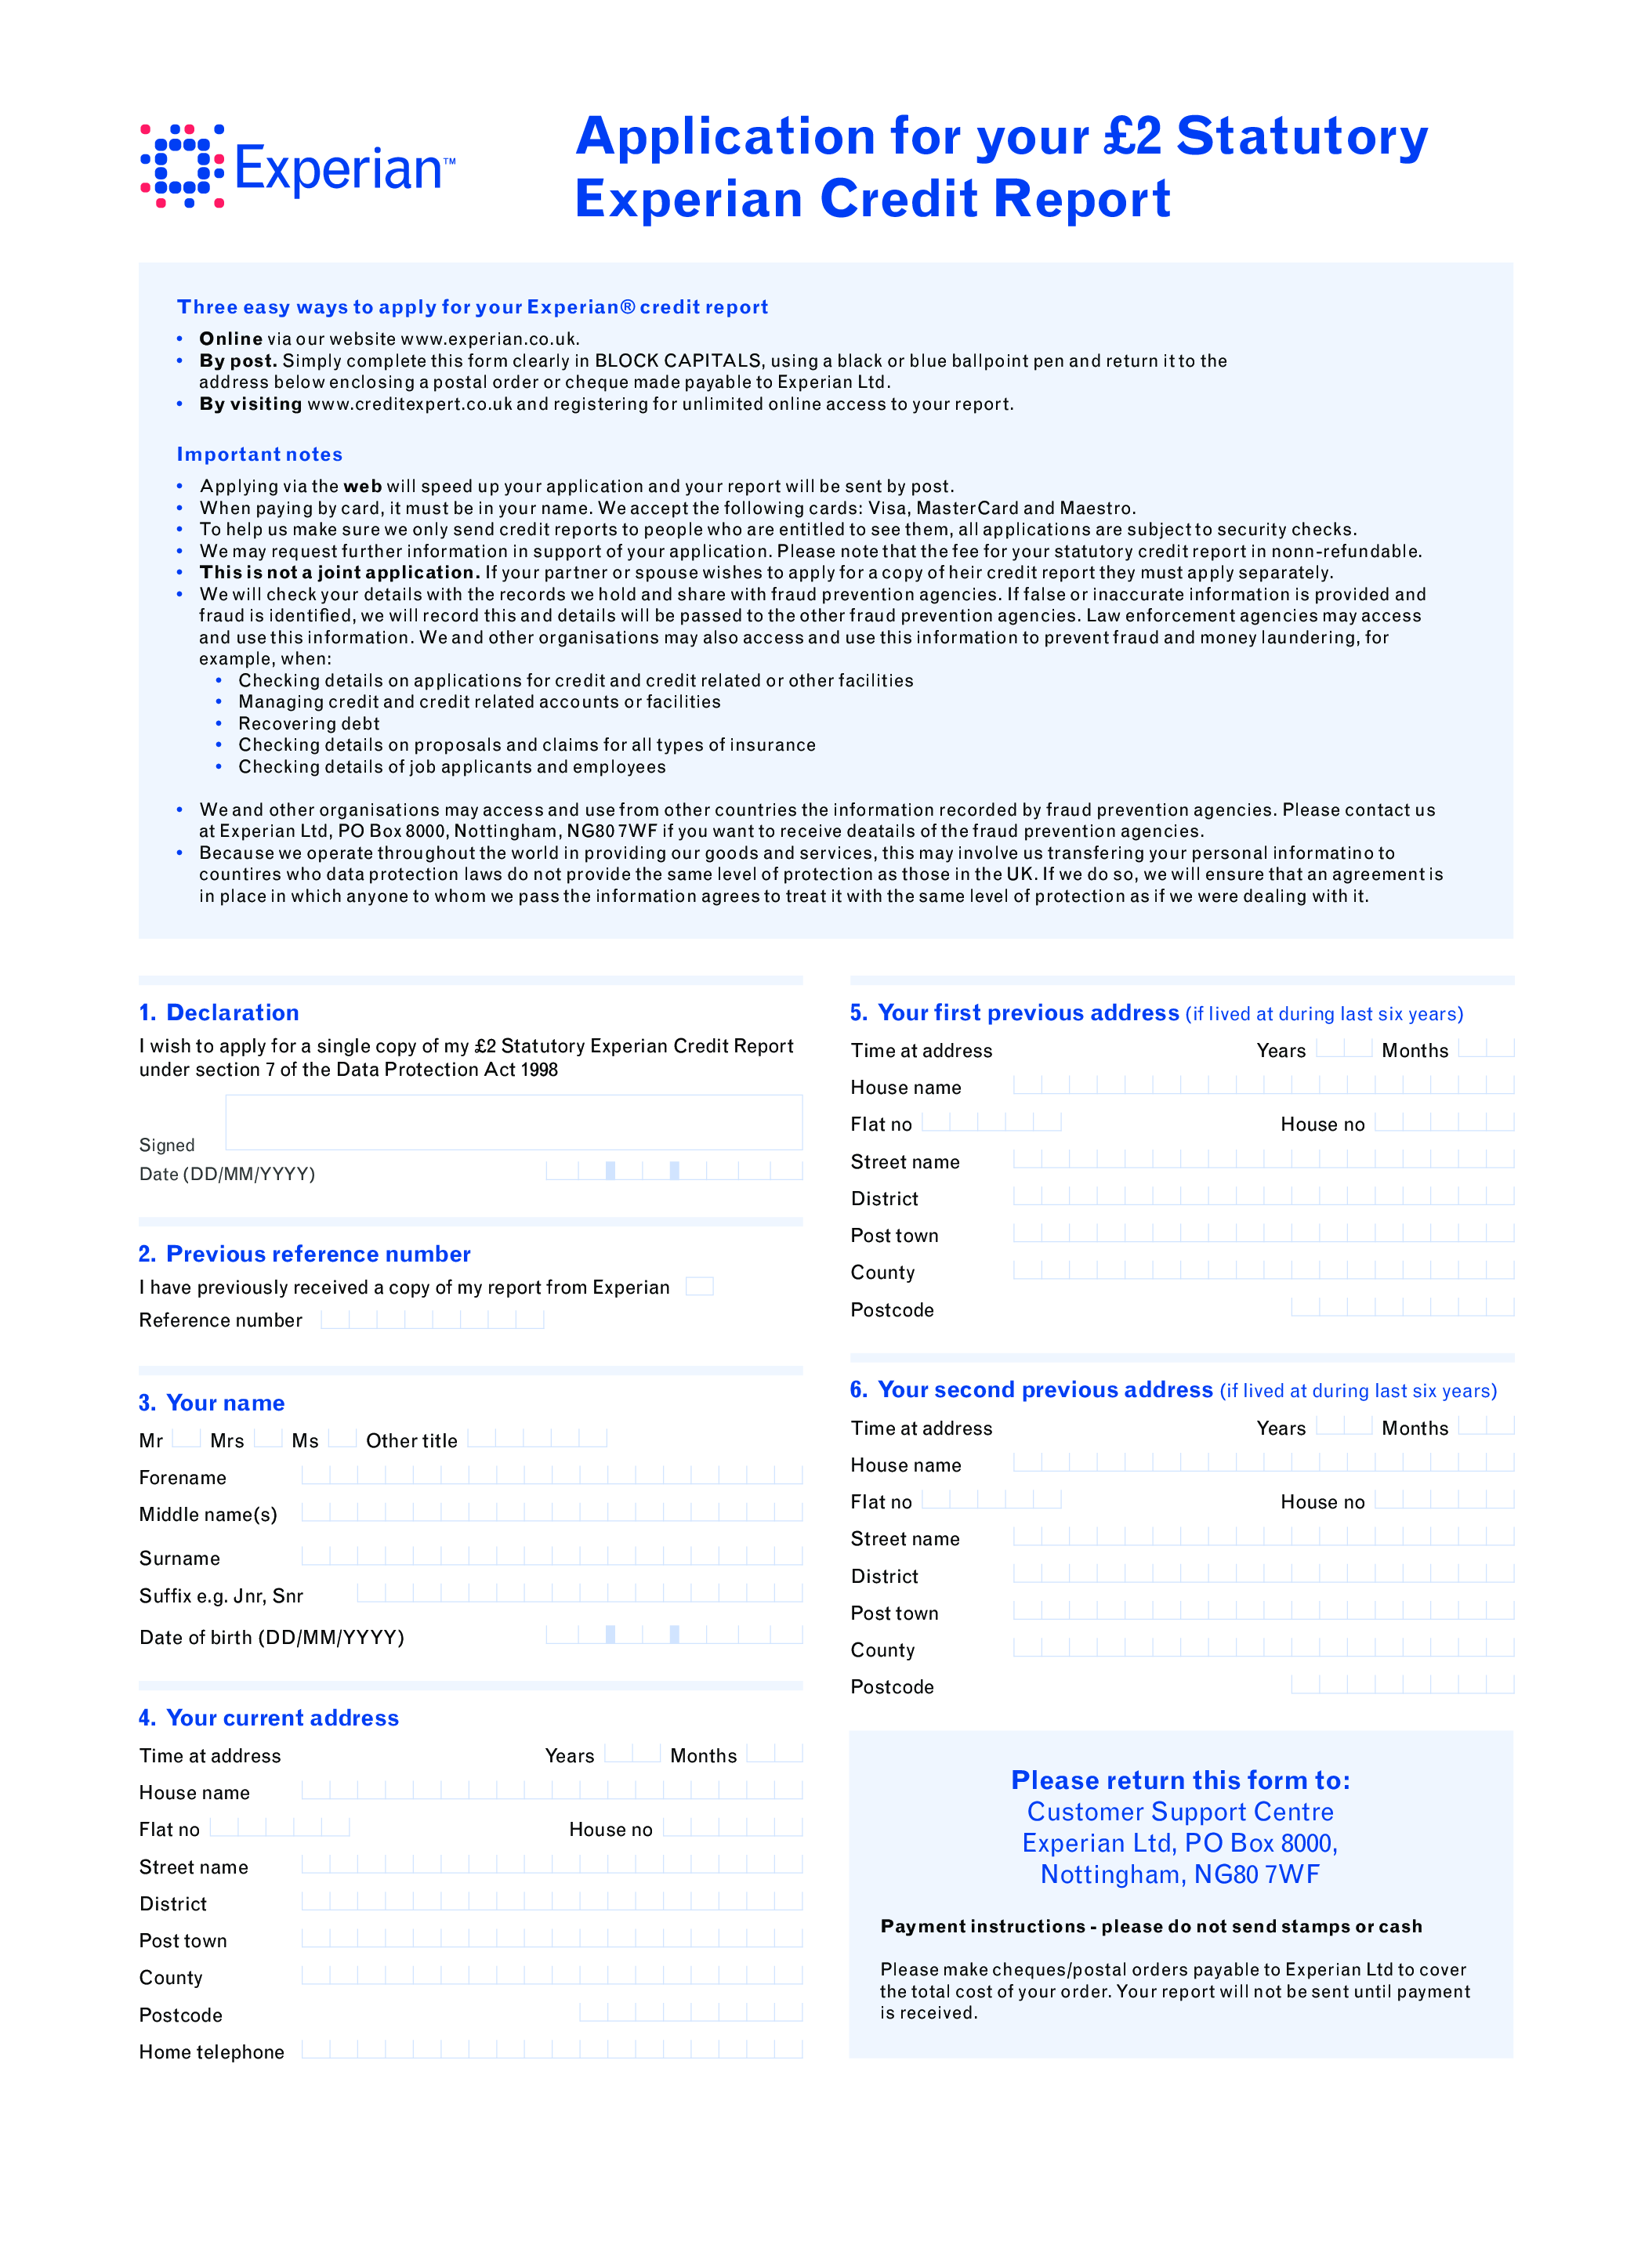 Credit Report Application Form Main Image Download Template